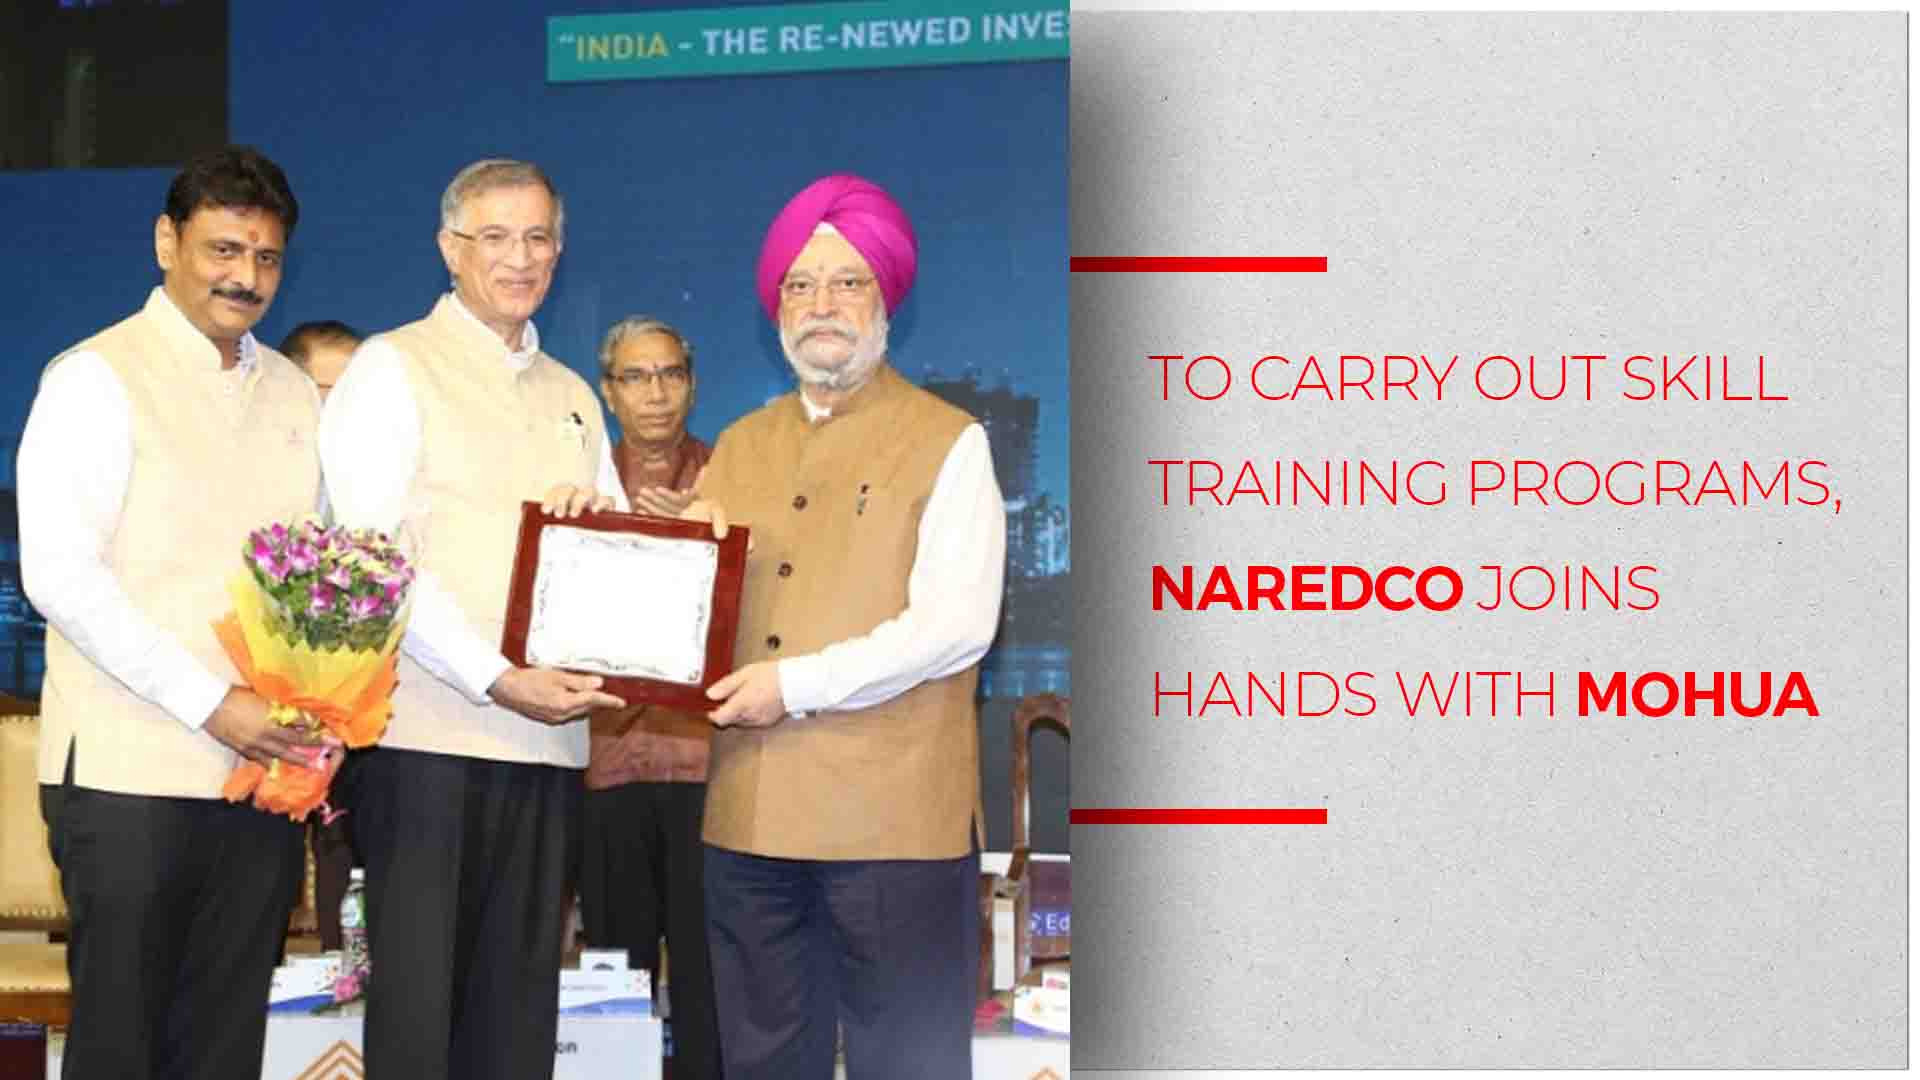 NAREDCO Teams Up With Ministry of Housing and Urban Affairs